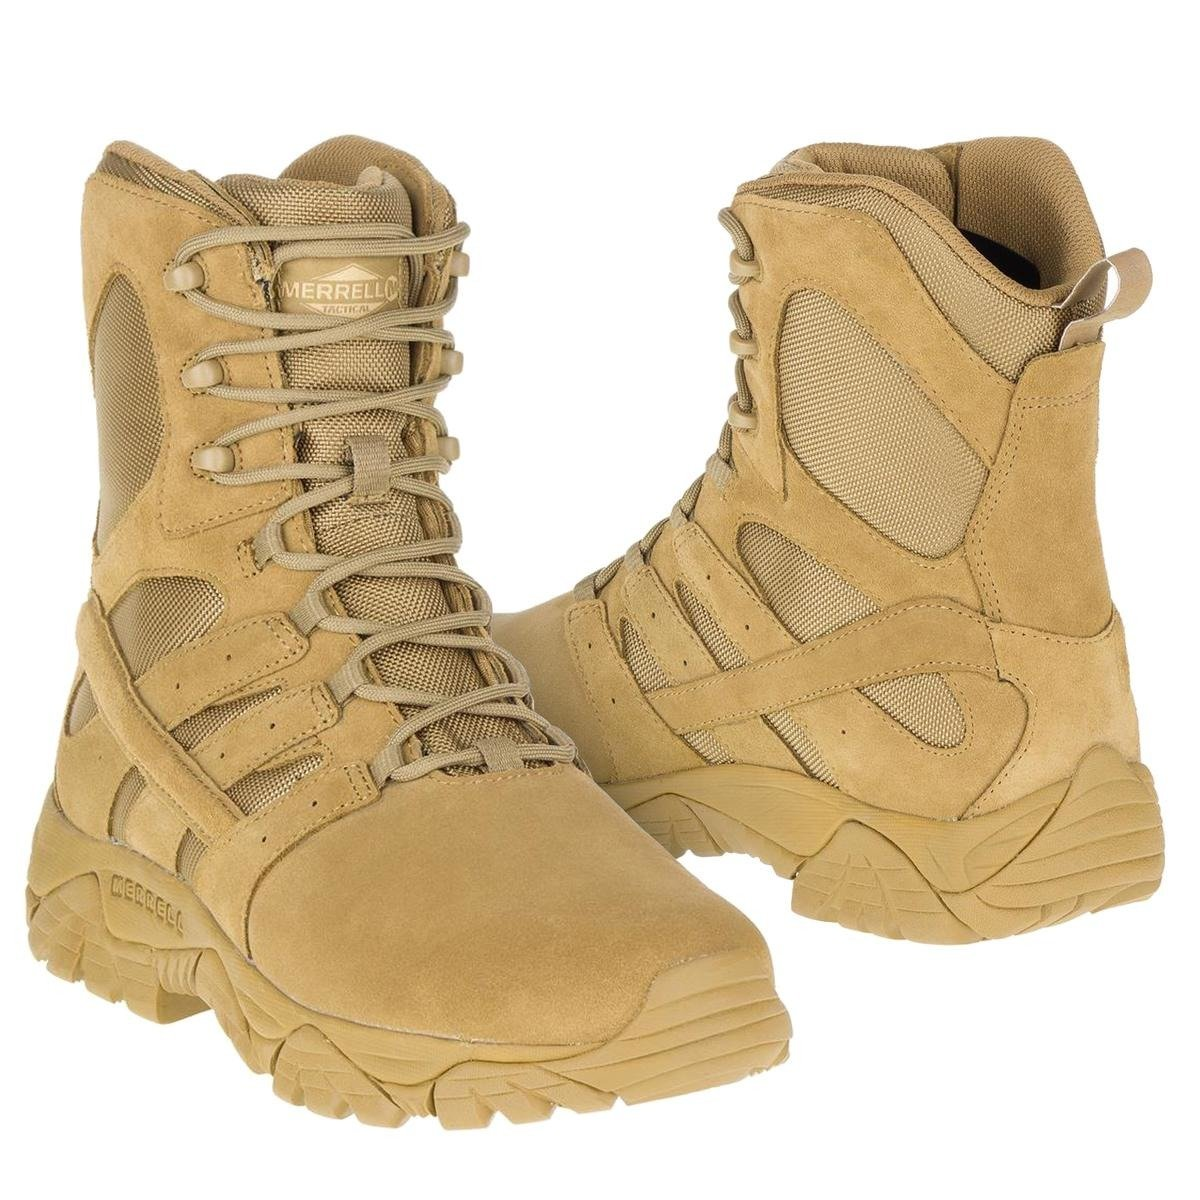 ... BAKANCS MERRELL MOAB 2 DEFENSE COYOTE ... 0e36d61256